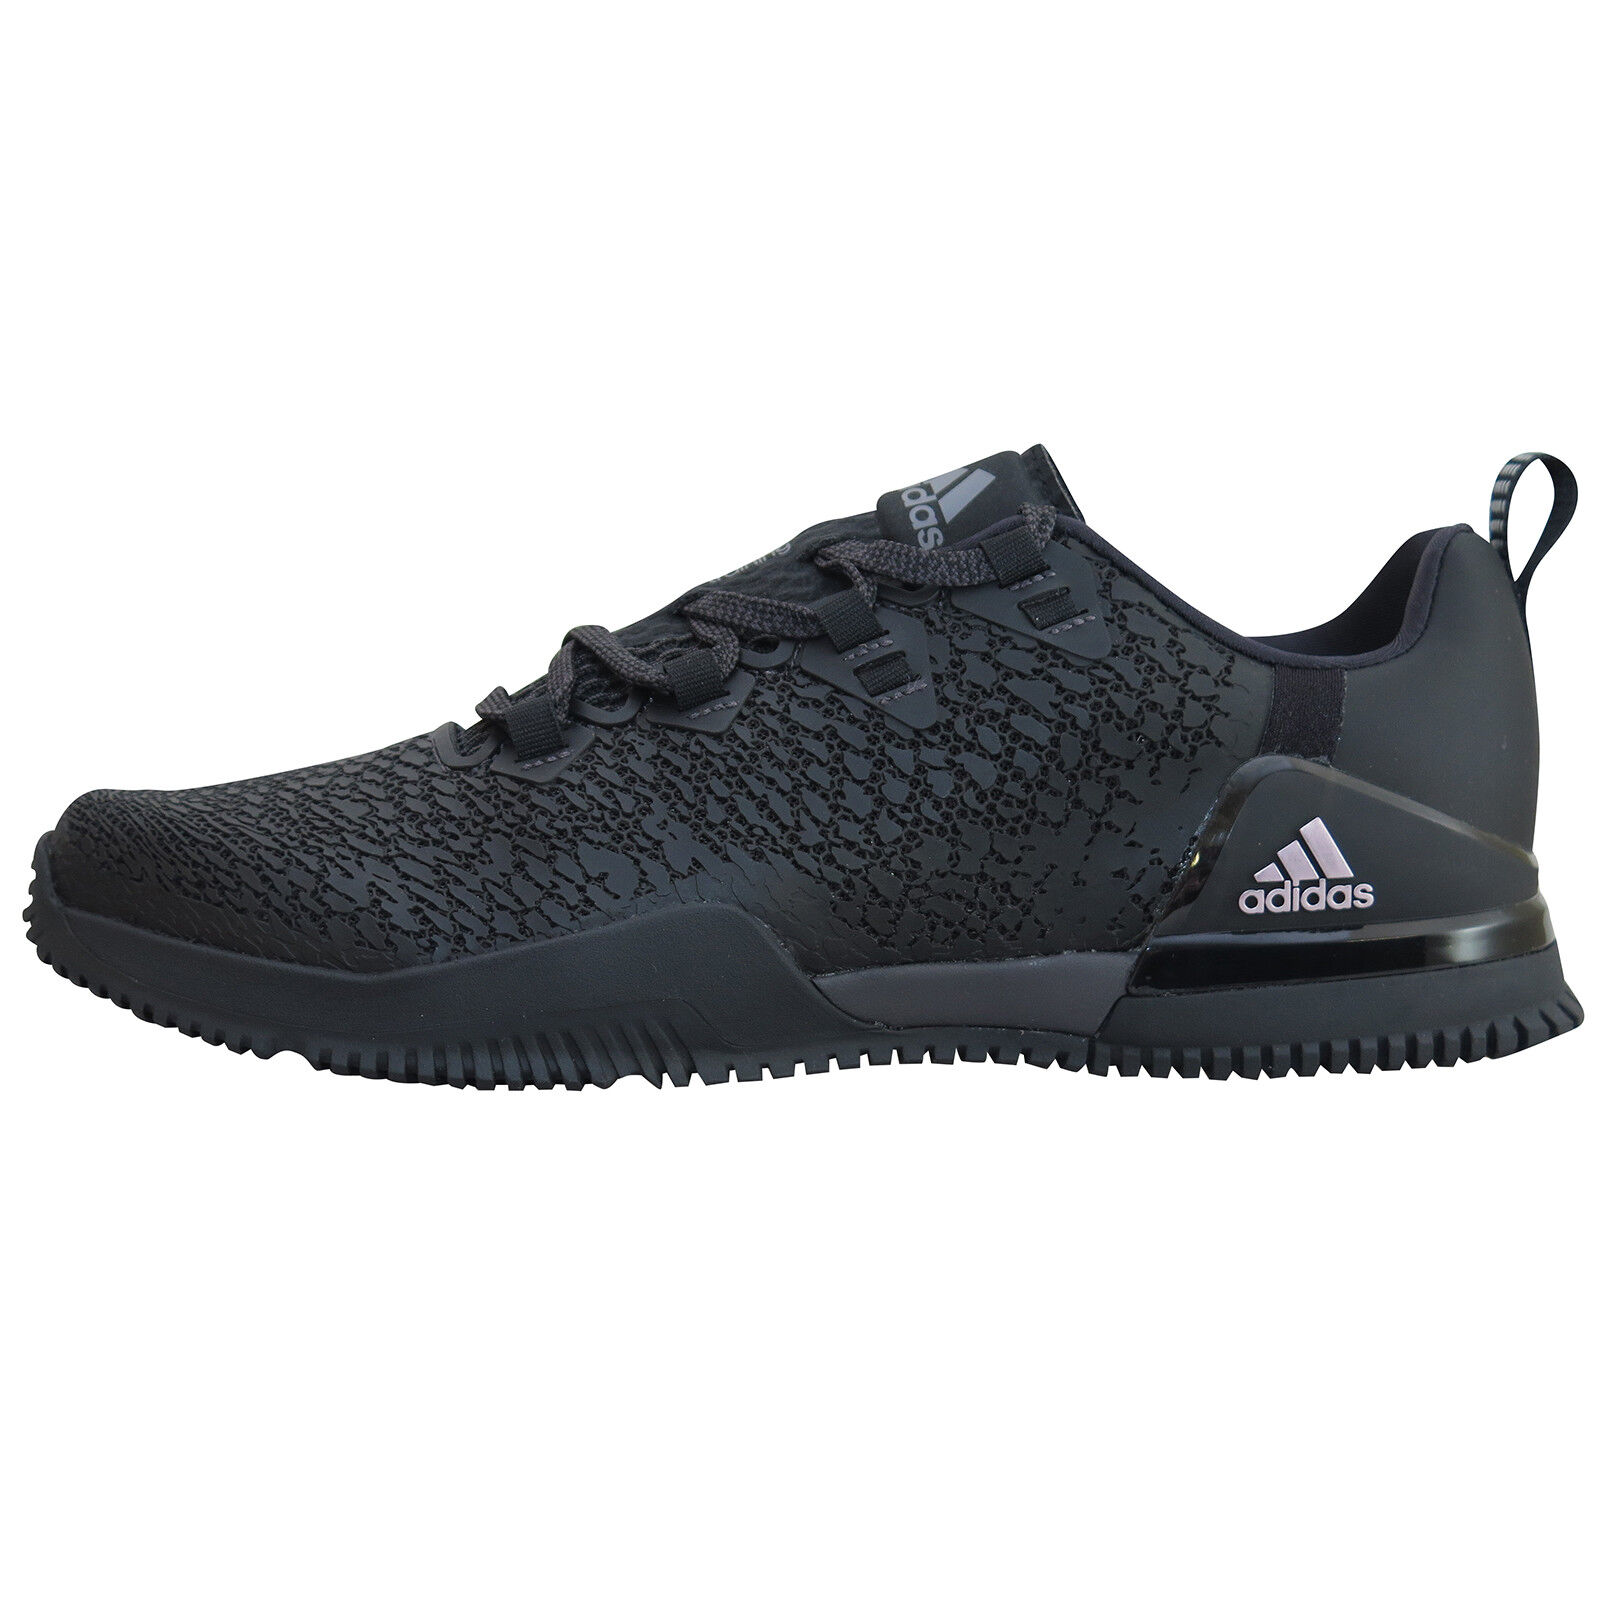 Details zu Adidas CrazyPower TR W Women Damen Trainingsschuhe BA9870